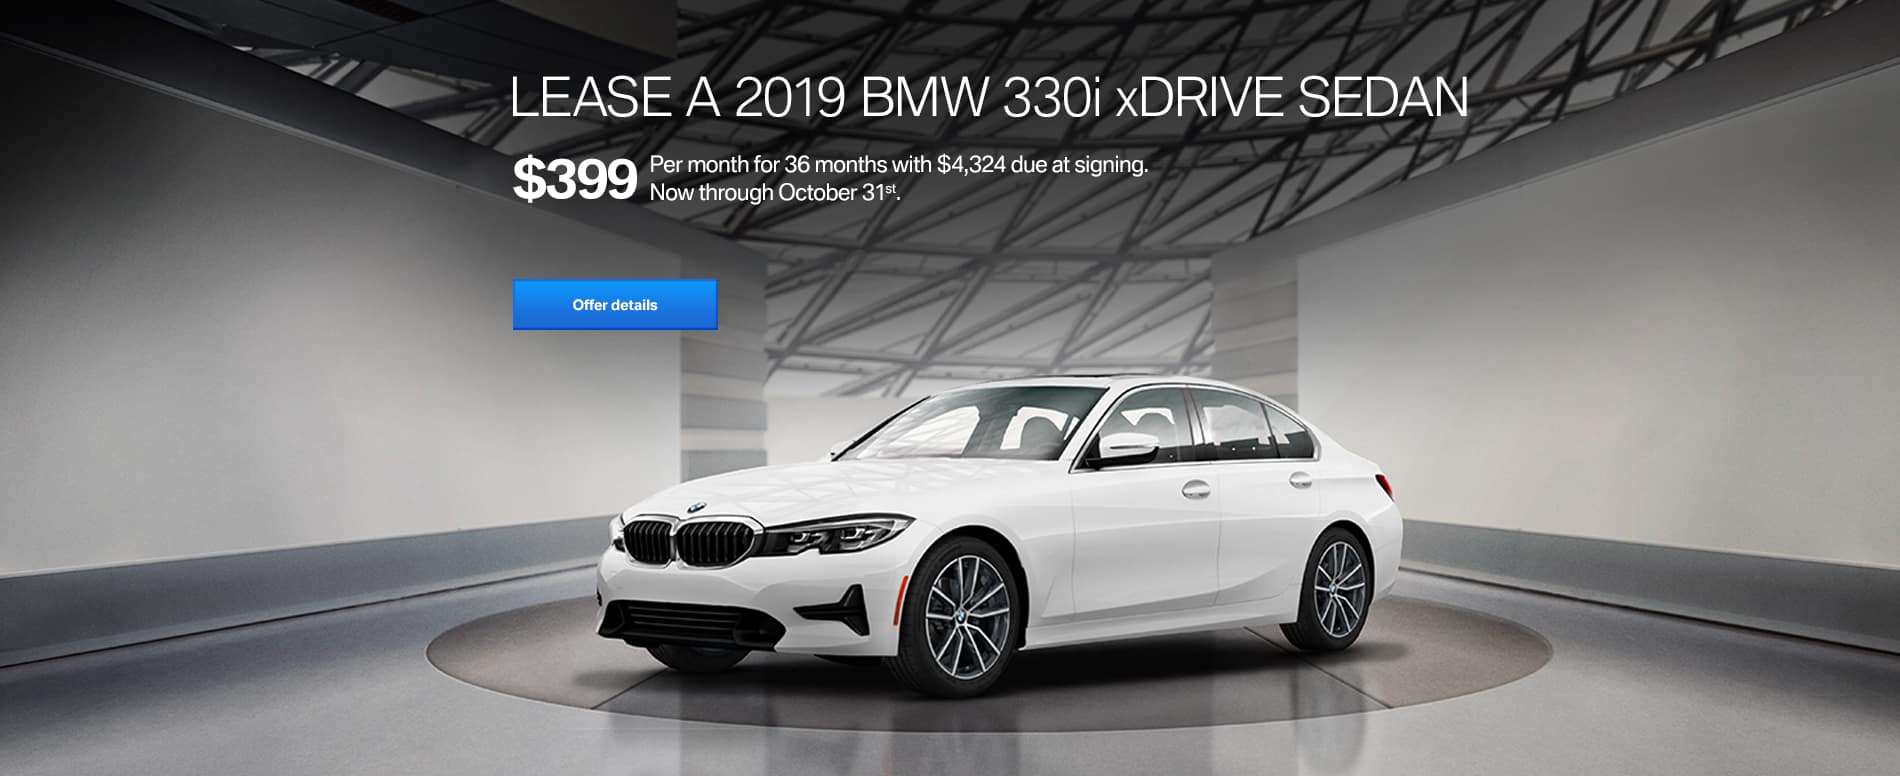 FMA2_OCT_PUSH_BMW_330i_xDrive_399